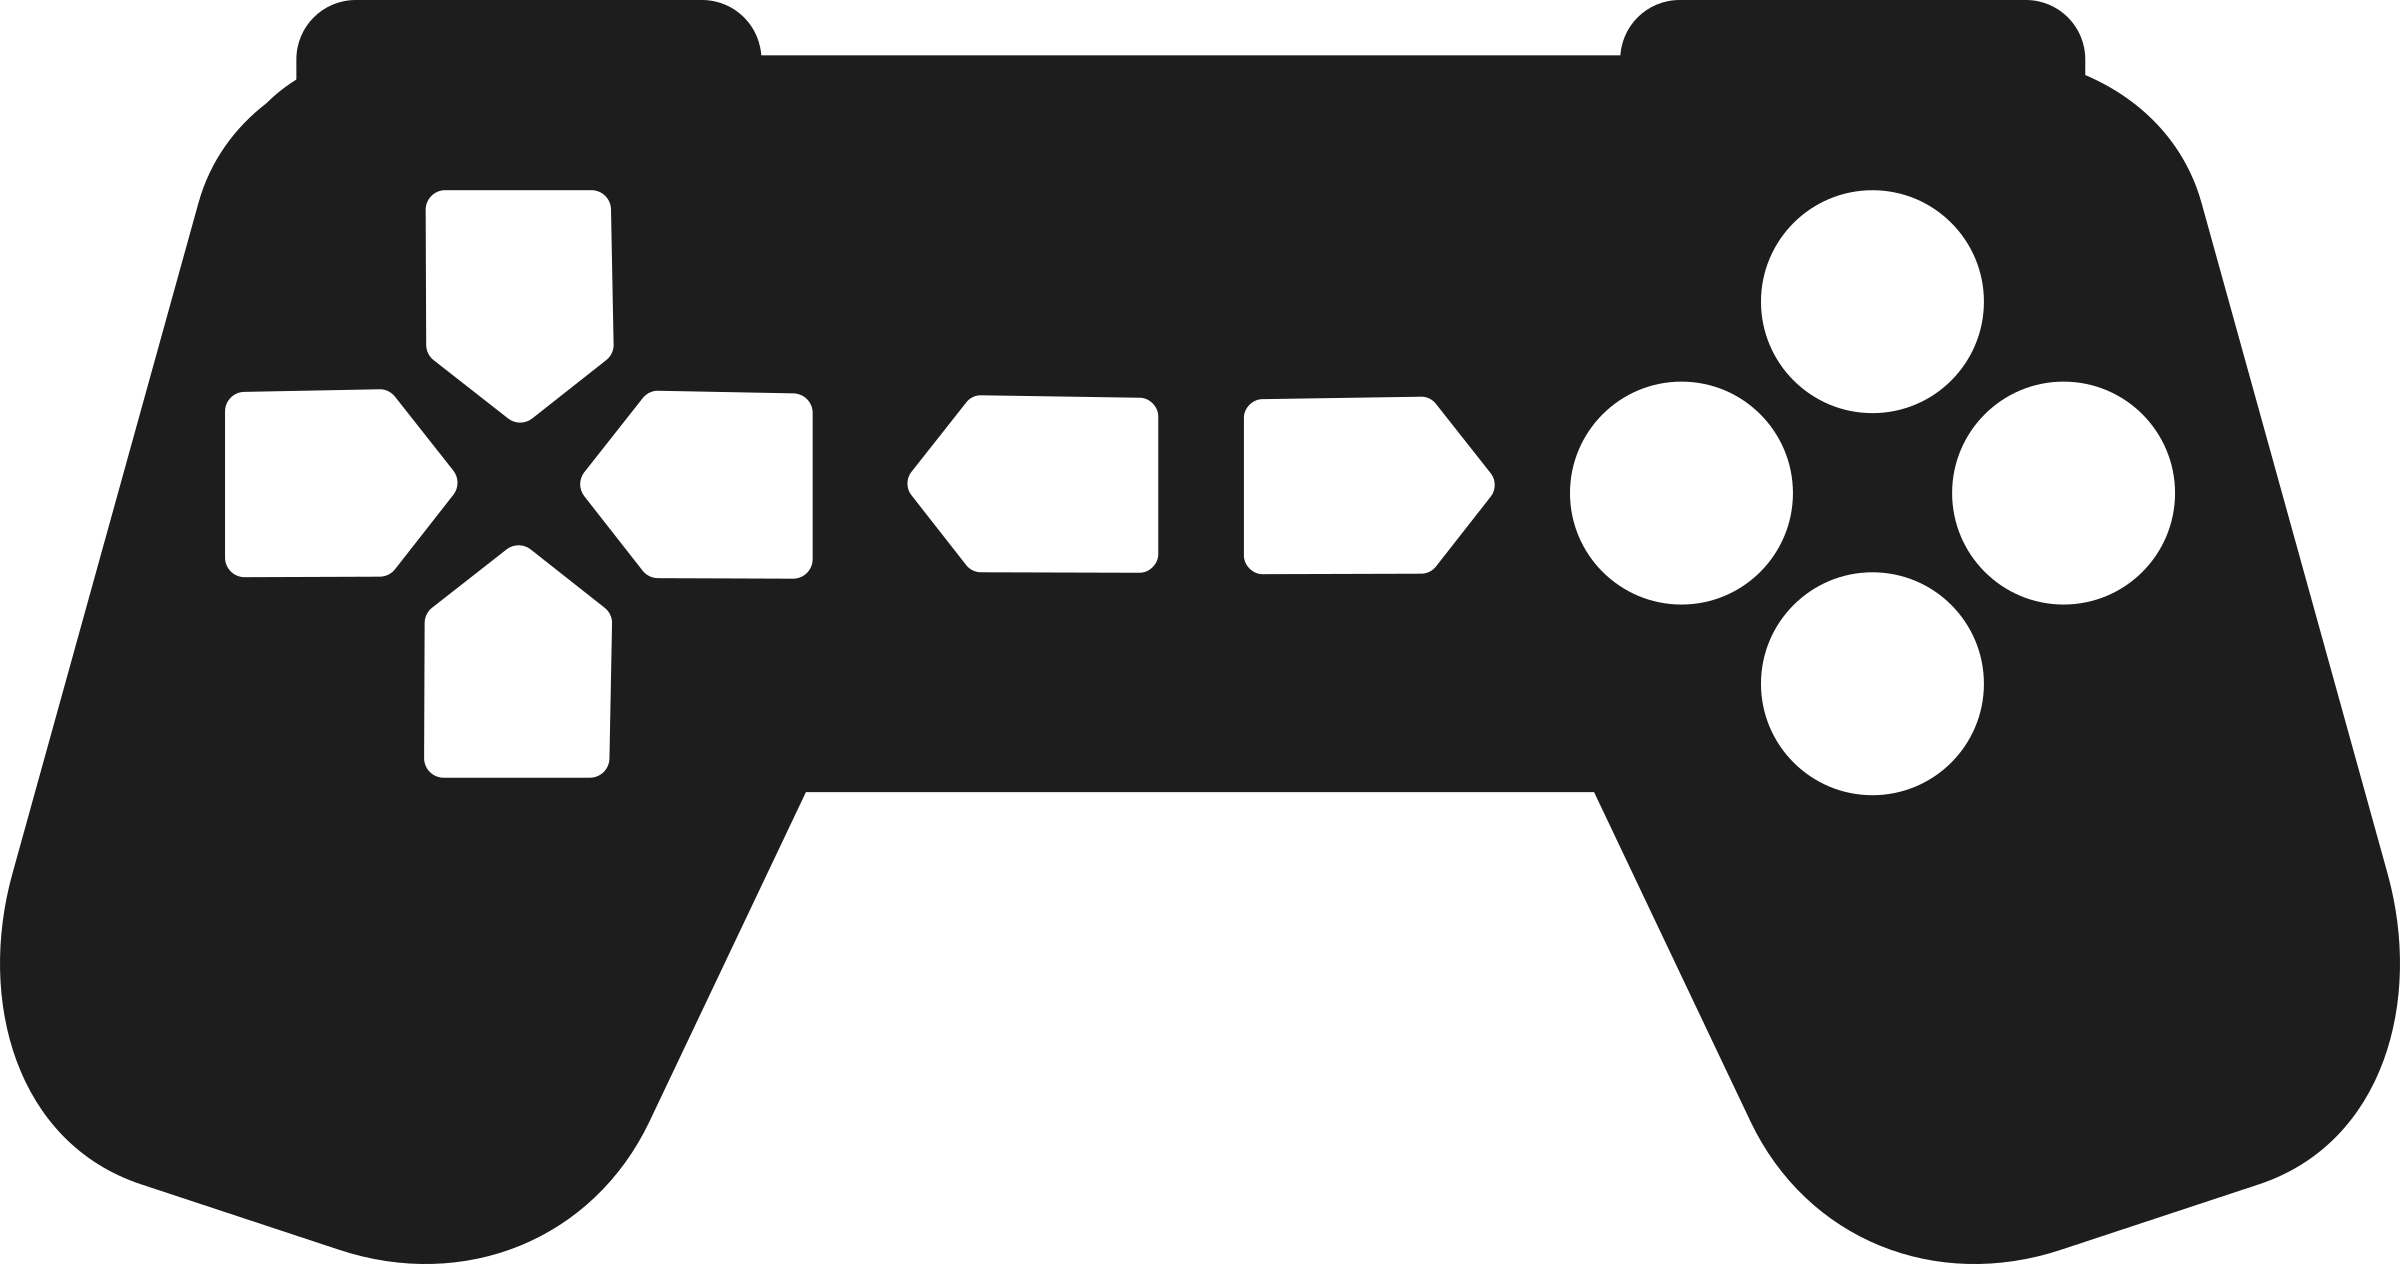 Game Controller Outline by qubodup